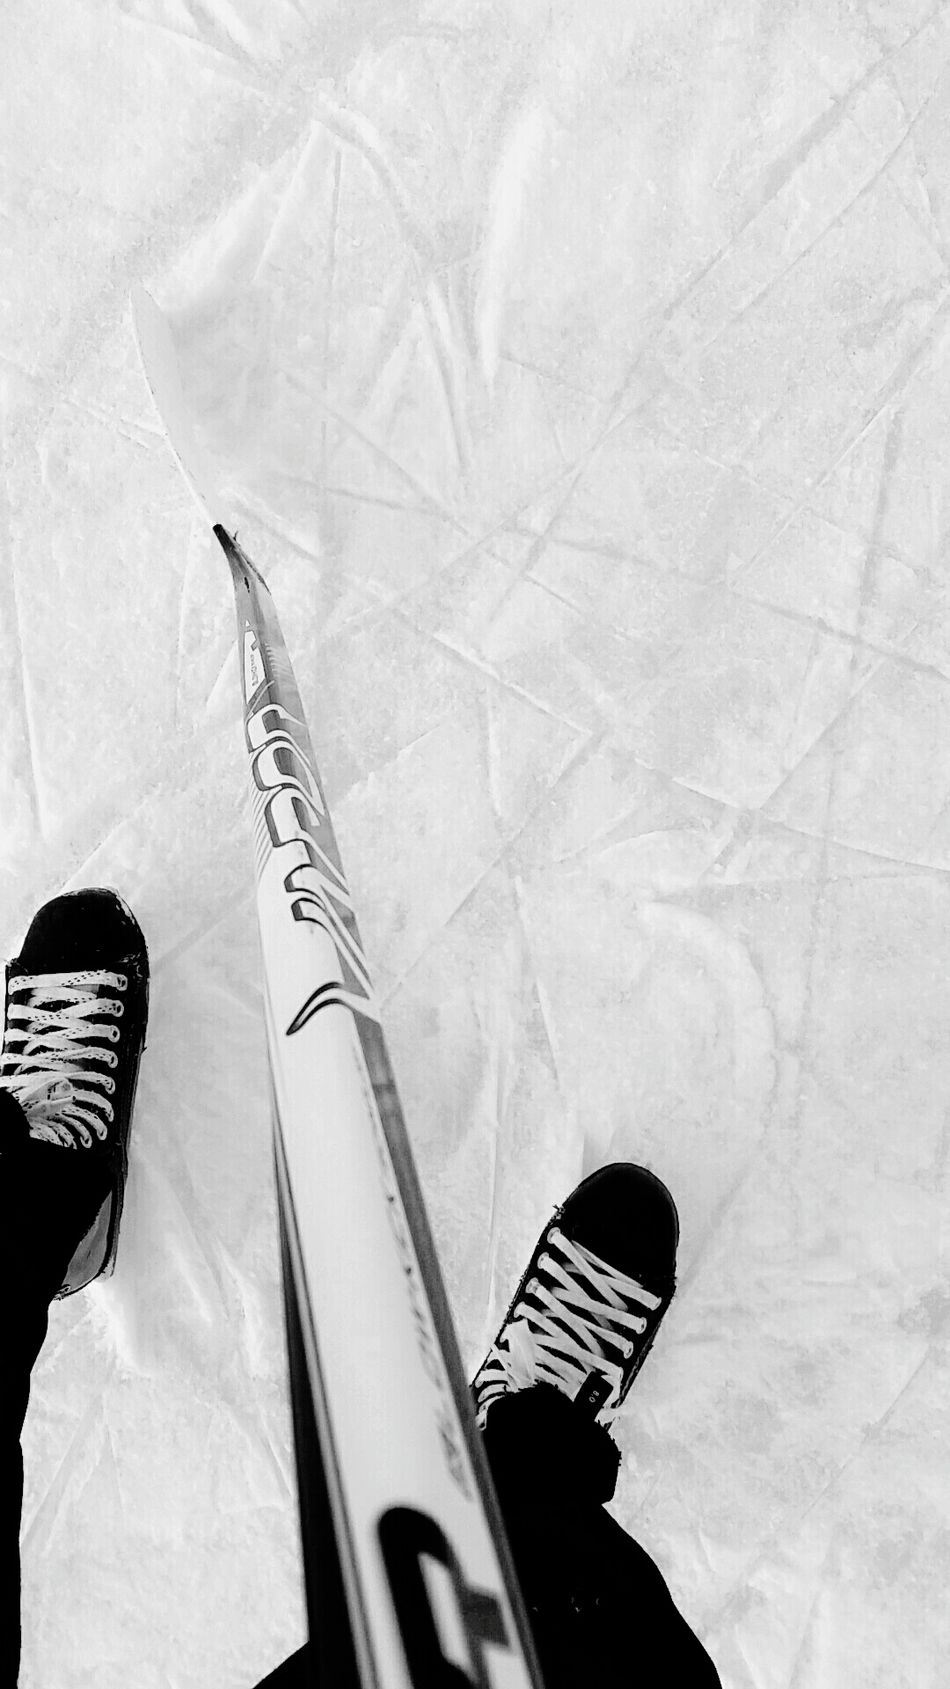 Repost Black And White Winter Snow Cold Temperature Nature Frozen No People Outdoors Day Ice Close-up Hockey Outdoor Hockey Pond Hockey